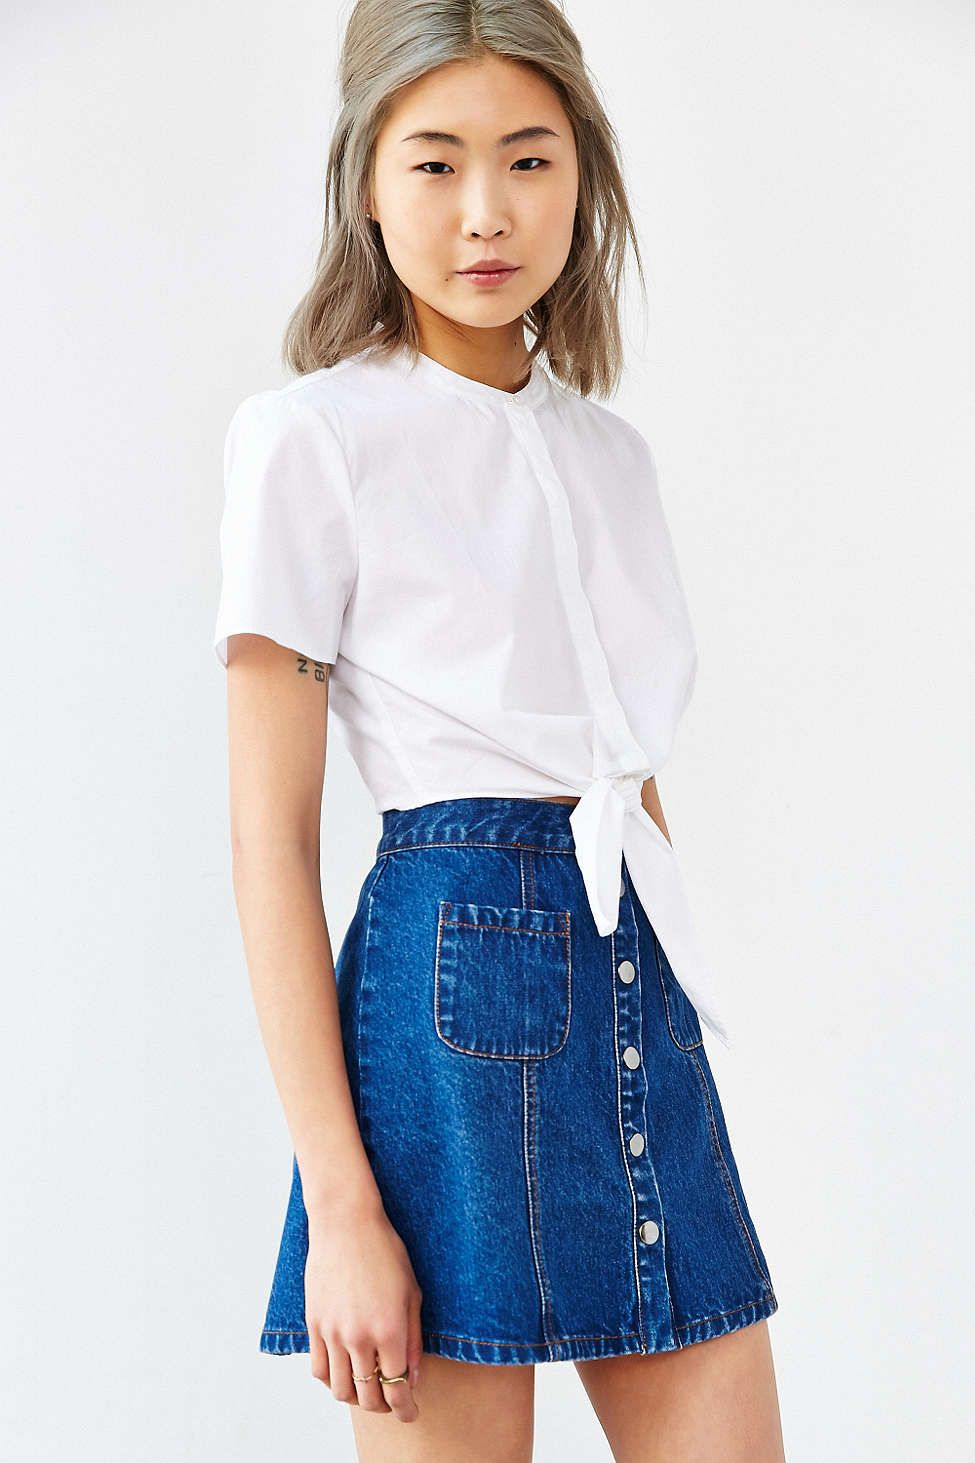 bbbc0fa3f90521 Alice & UO Betty Tie-Front Cropped Top - Urban Outfitters | Femme ...